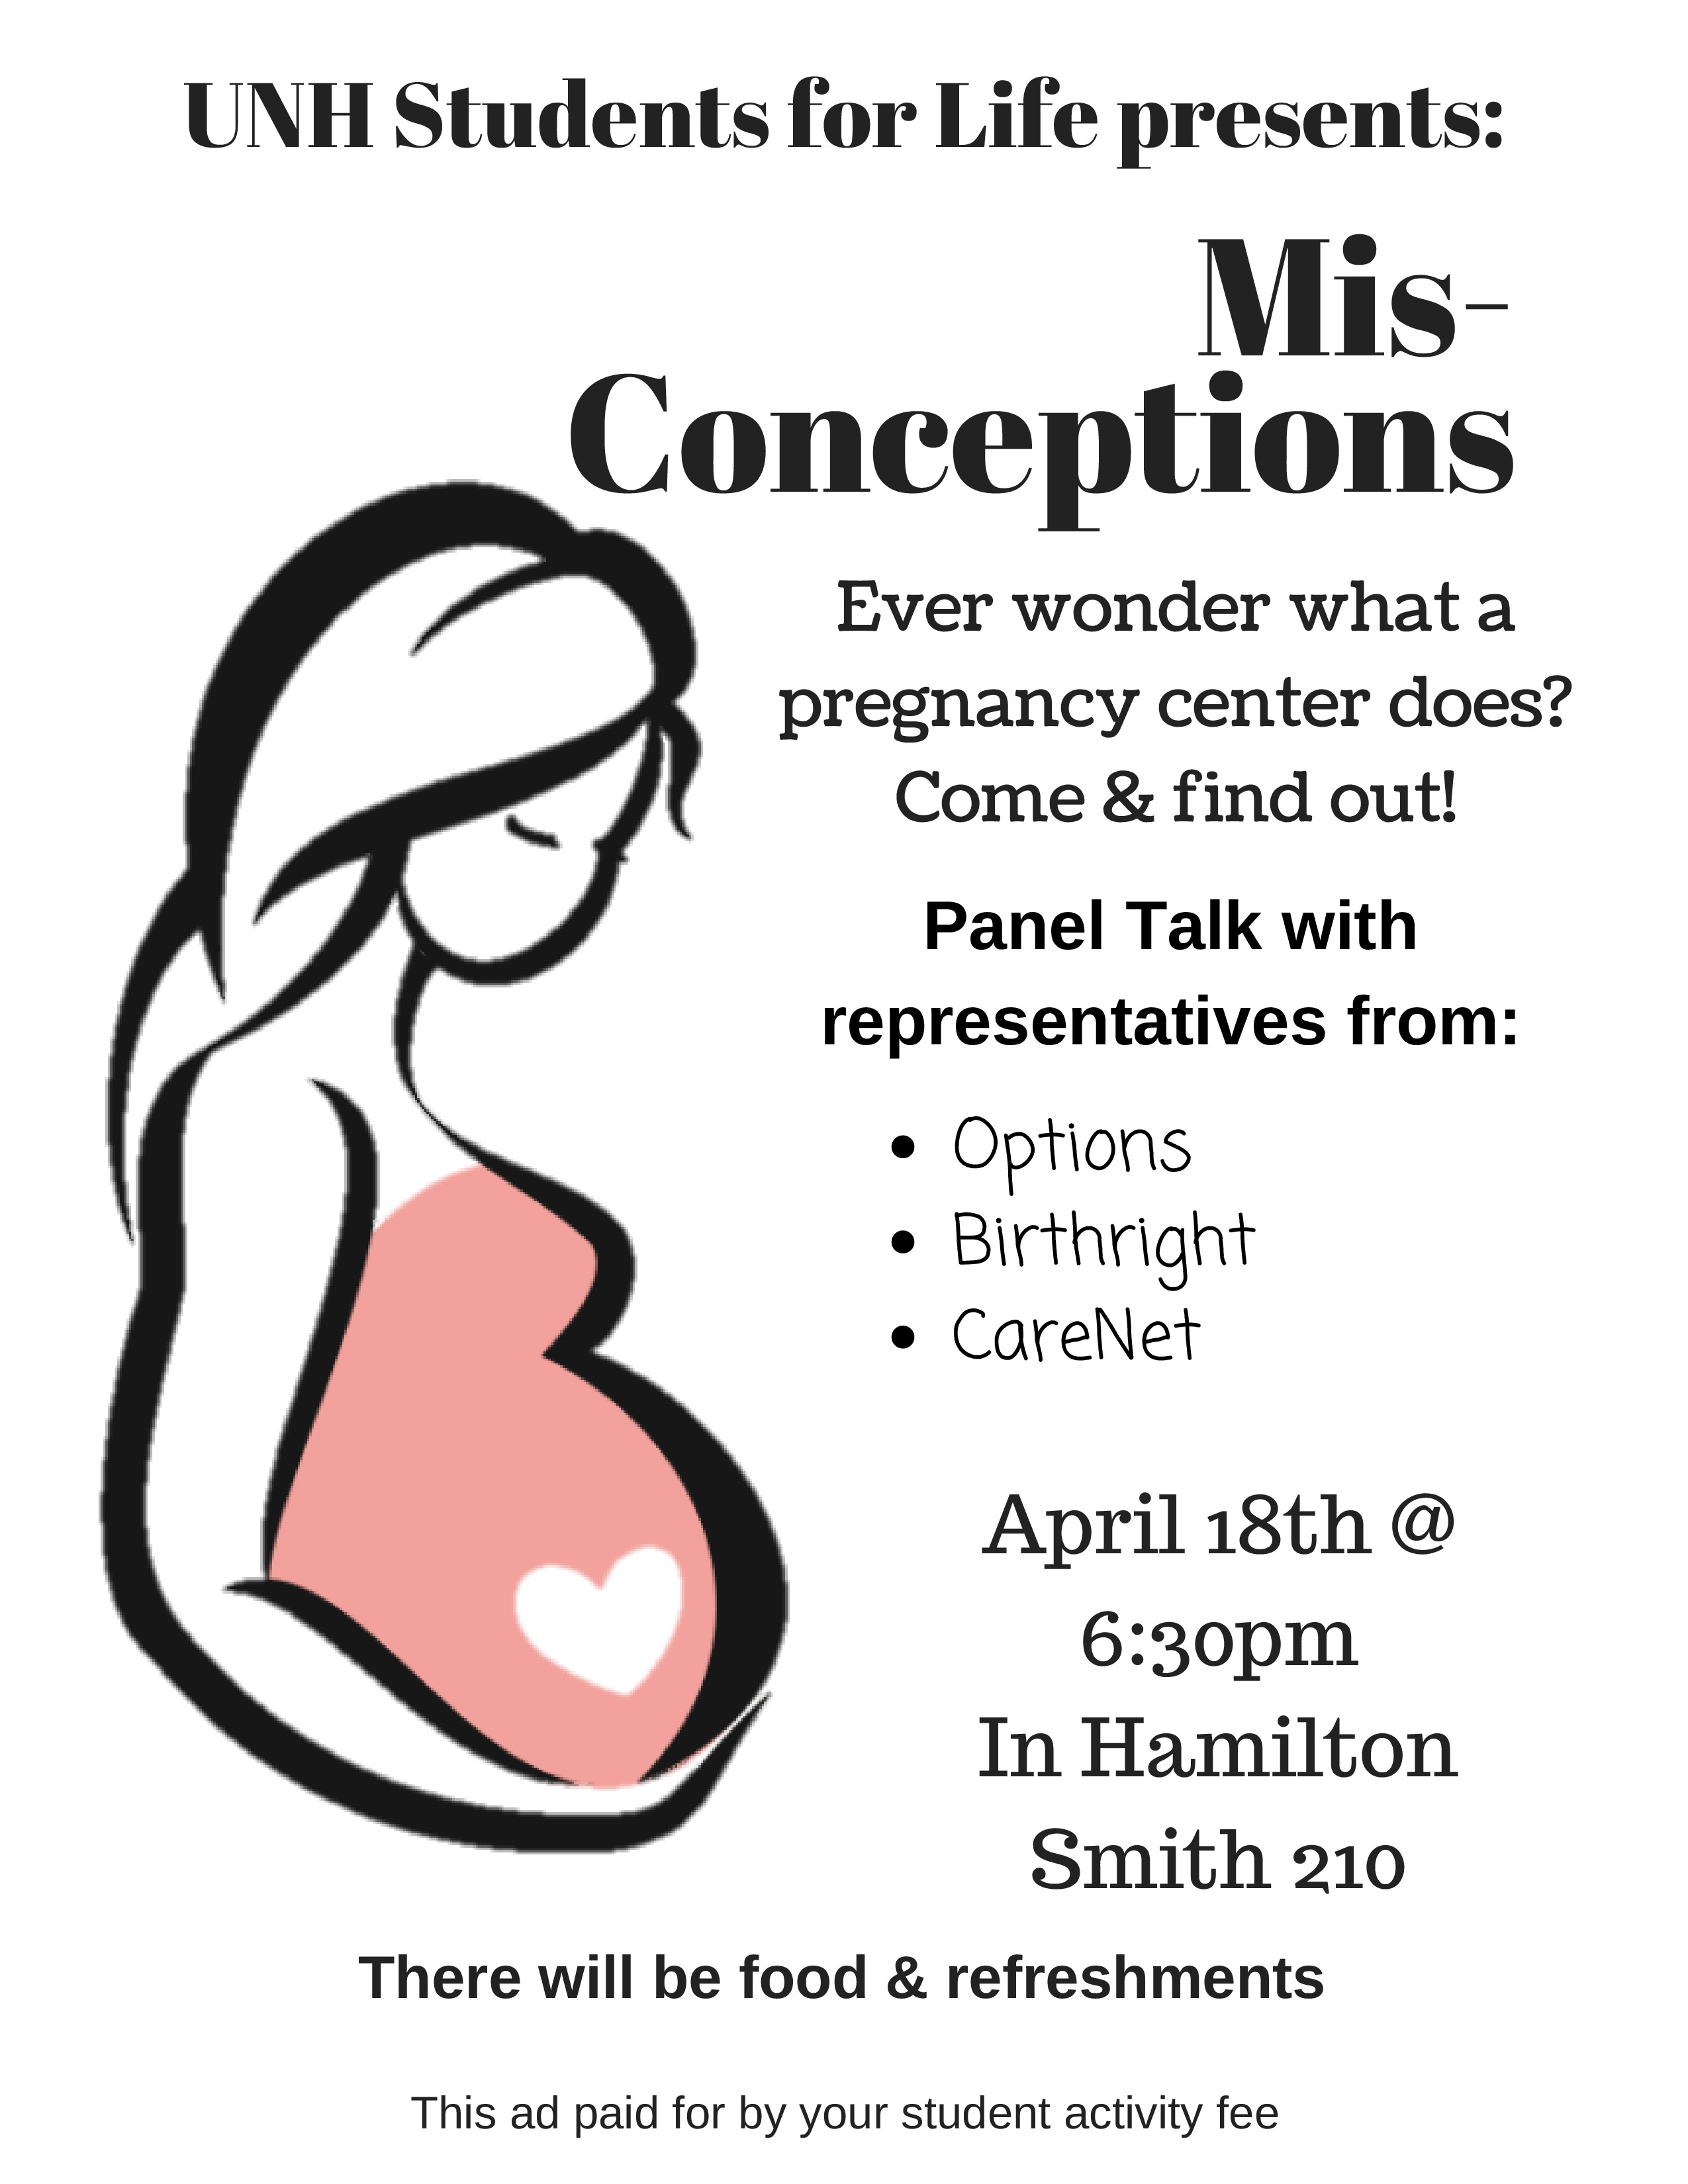 UNH Students for Life presents: Mis-Conceptions